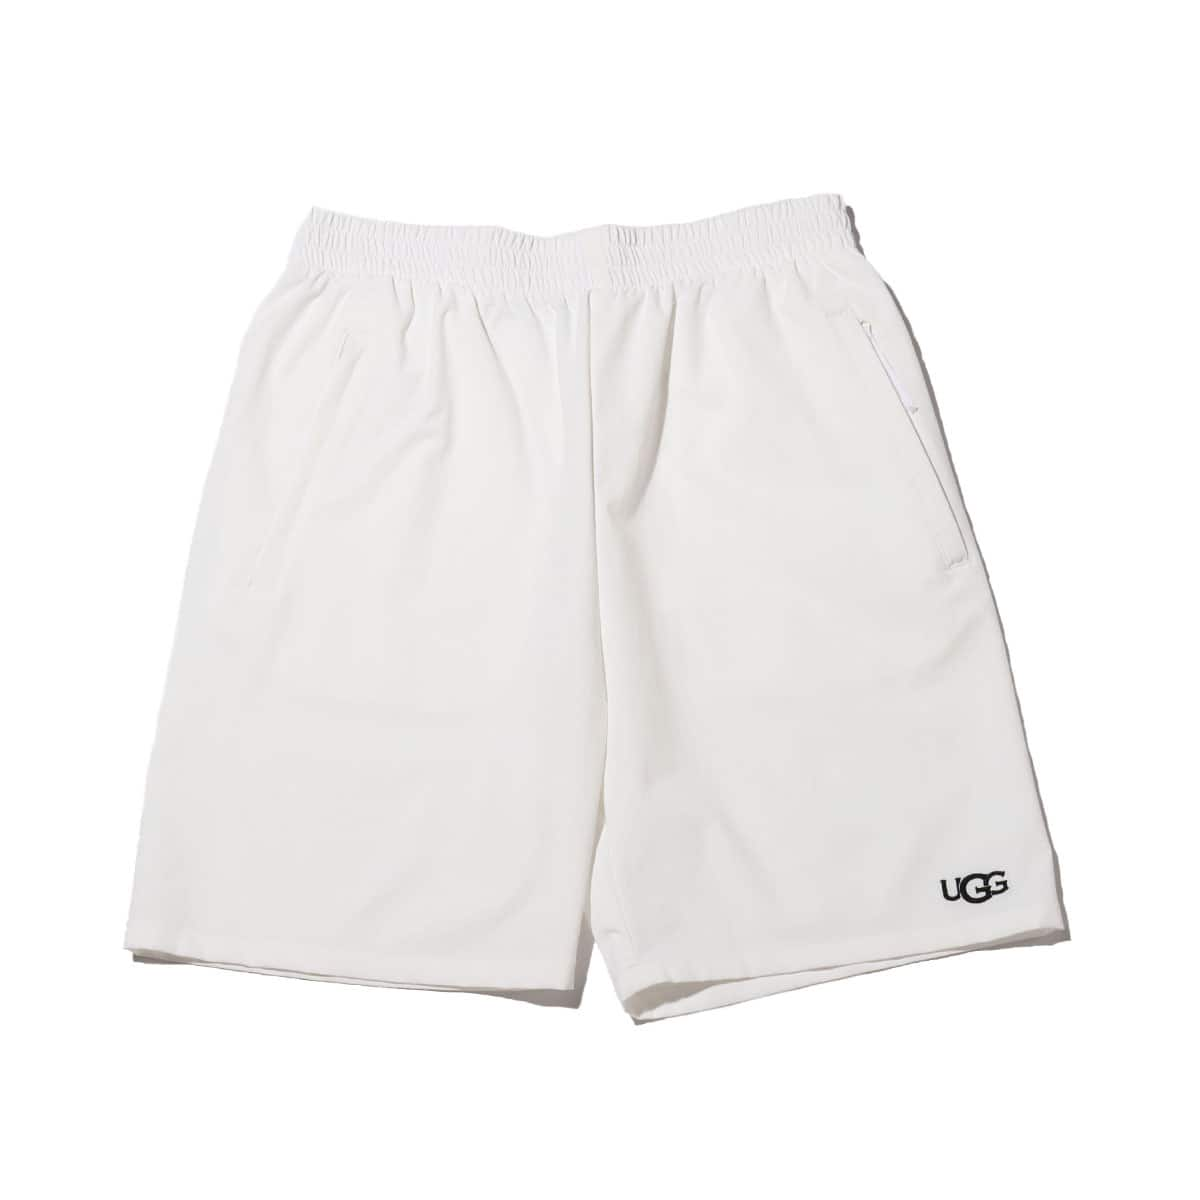 UGG EASY SHORTS WHITE 20SS-S_photo_large